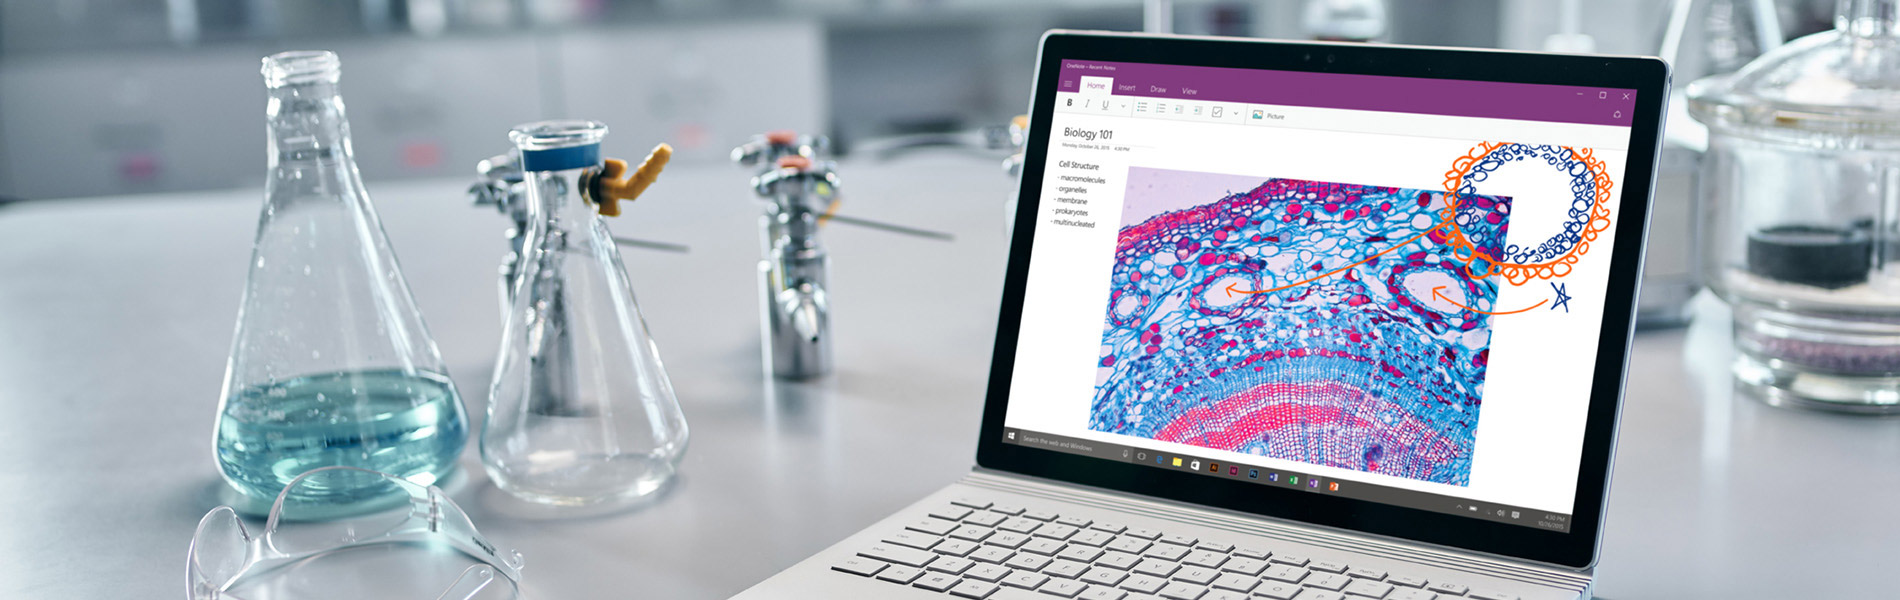 An image of a laptop using onenote in a science laboratory